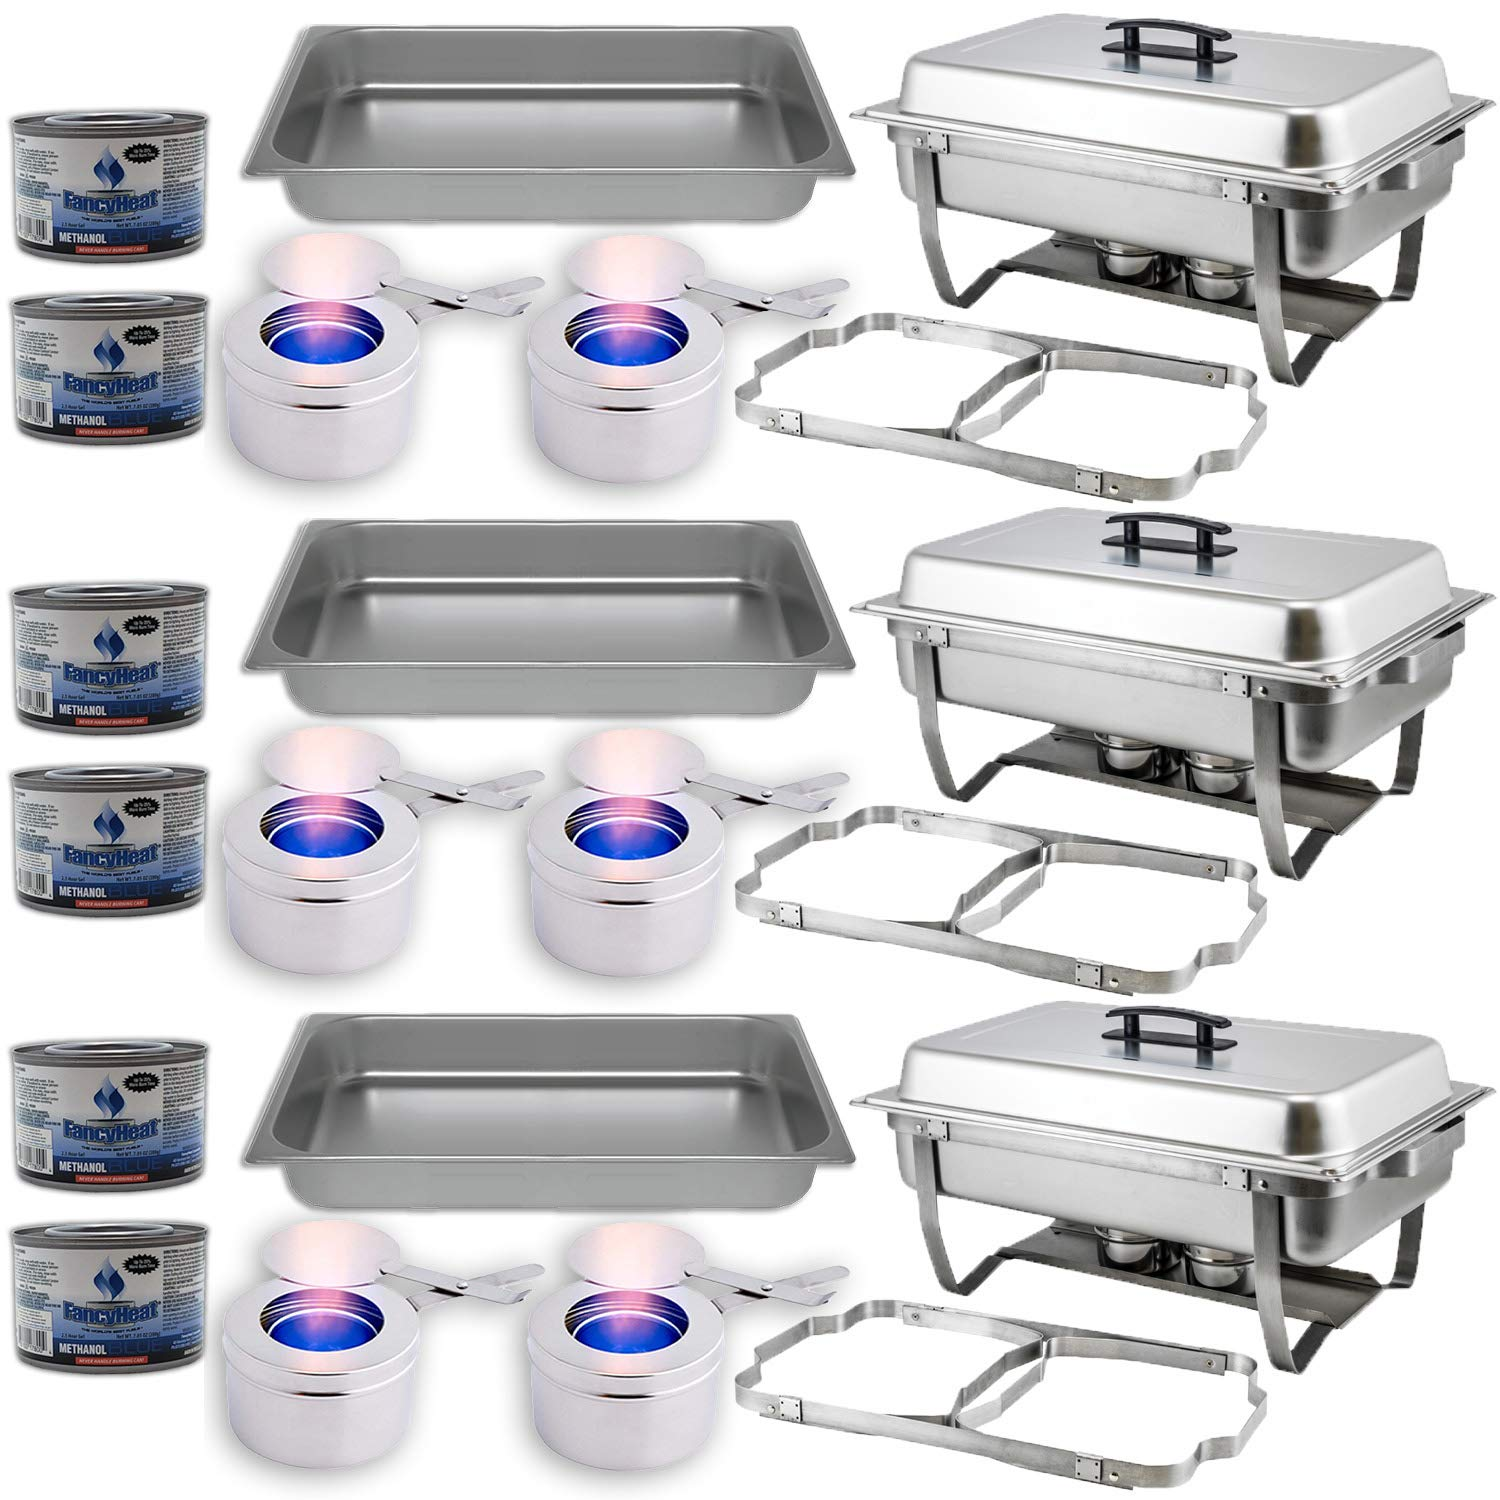 Chafing Dish Buffet Set w/Fuel - Folding Frame + Water Pan + Food Pan (8 qt) + 6 Fuel Holders + 6 Fuel Cans - 3 Full Warmer Kit, Stainless Steel Construction by HeroFiber